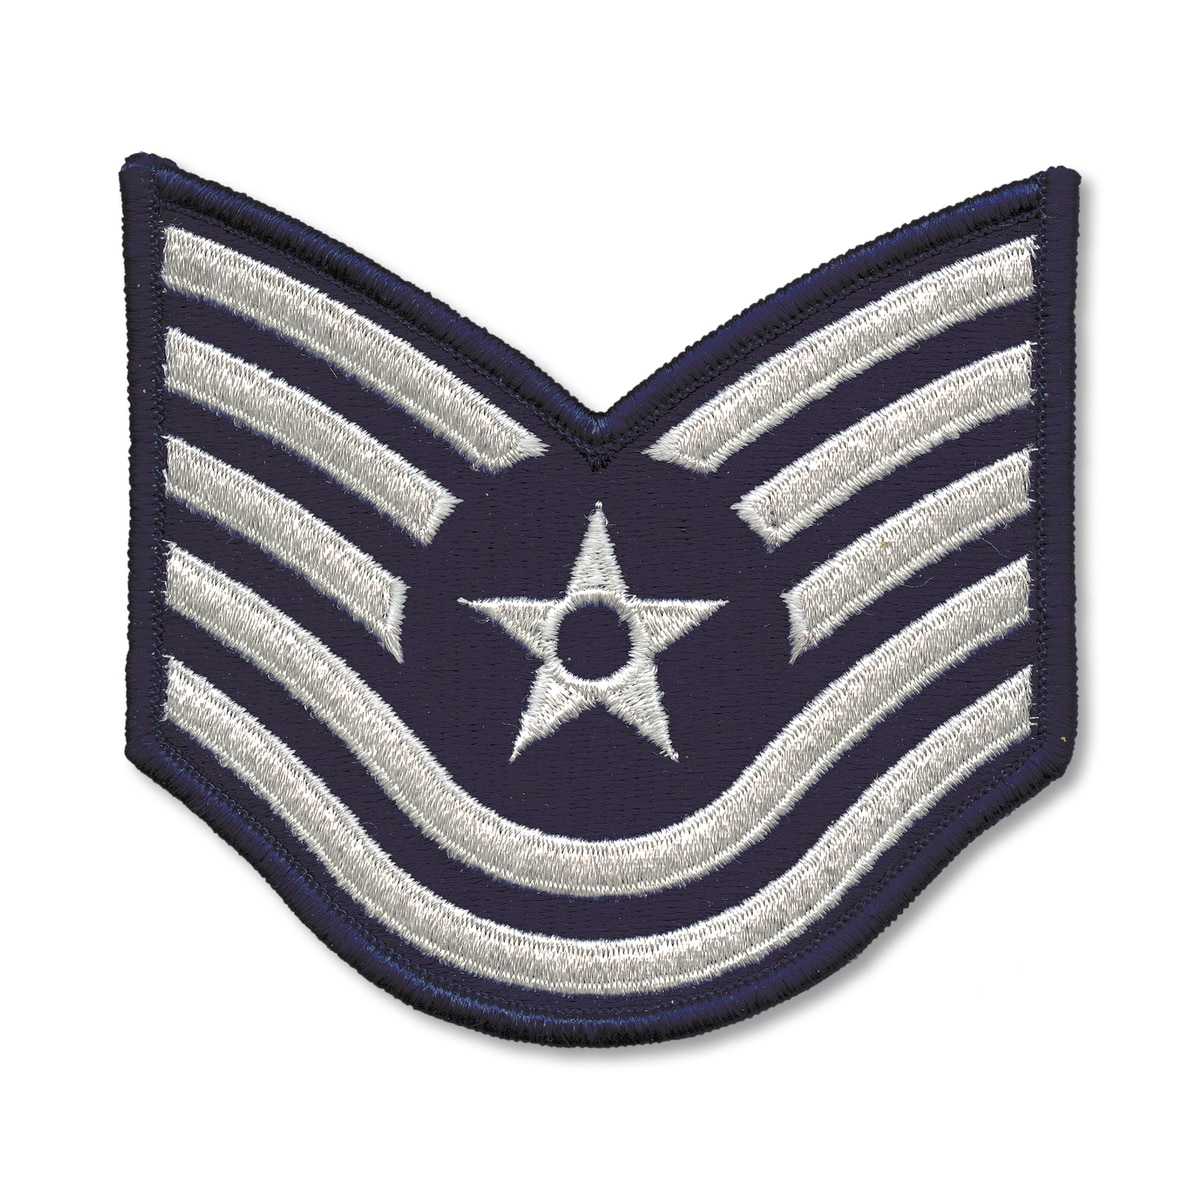 Tech sergeant promotions hit 17-year high